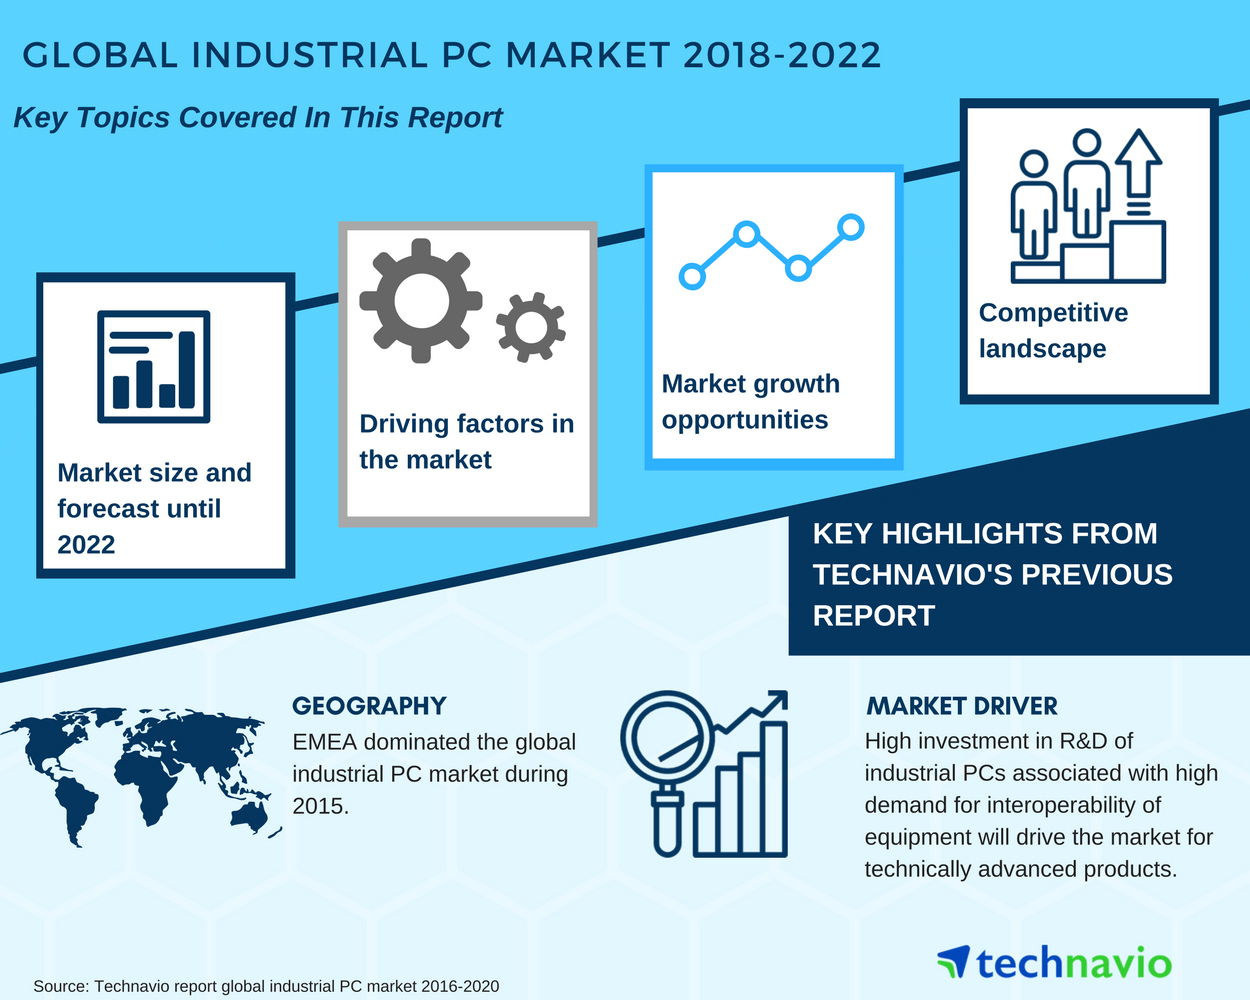 Global Industrial PC Market - Growth Prospects and Forecasts